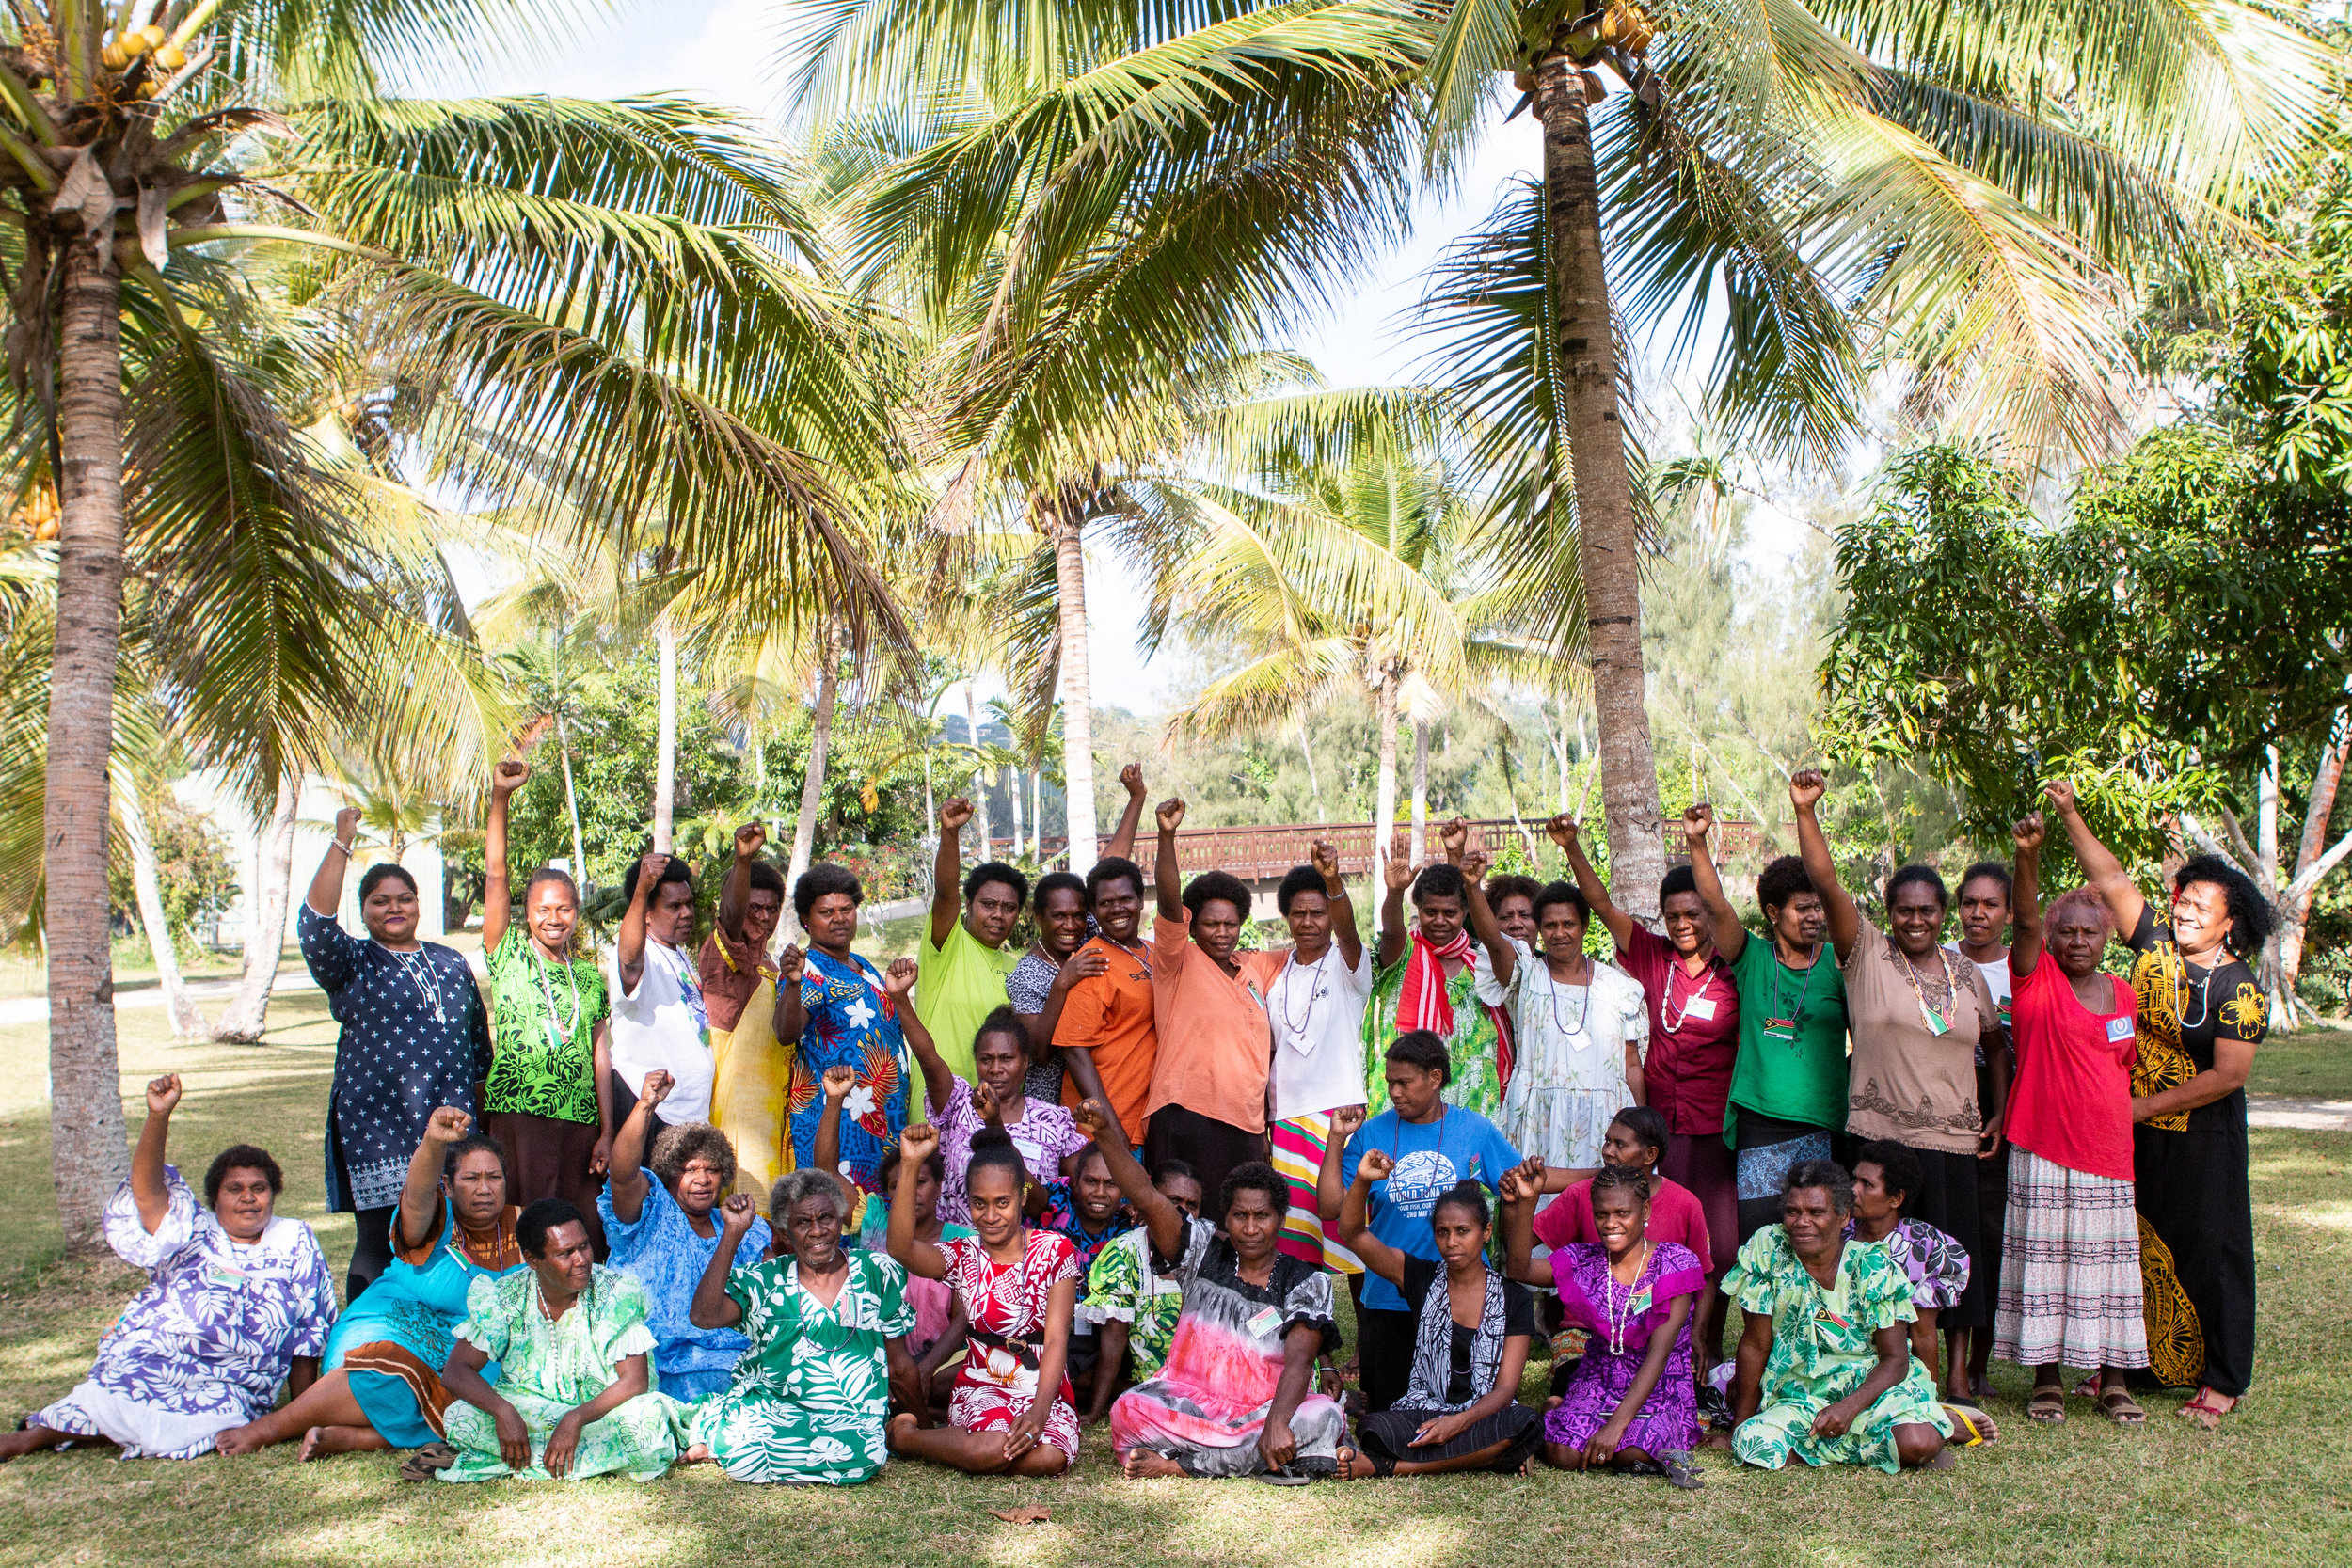 Above: ActionAid's Training of Trainers in Port Vila was attended by 35 women leaders from Women I TokTok Tugetha and 12 women from Shifting the Power Coalition Network, representing six countries in the Pacific. Photo credit: ActionAid